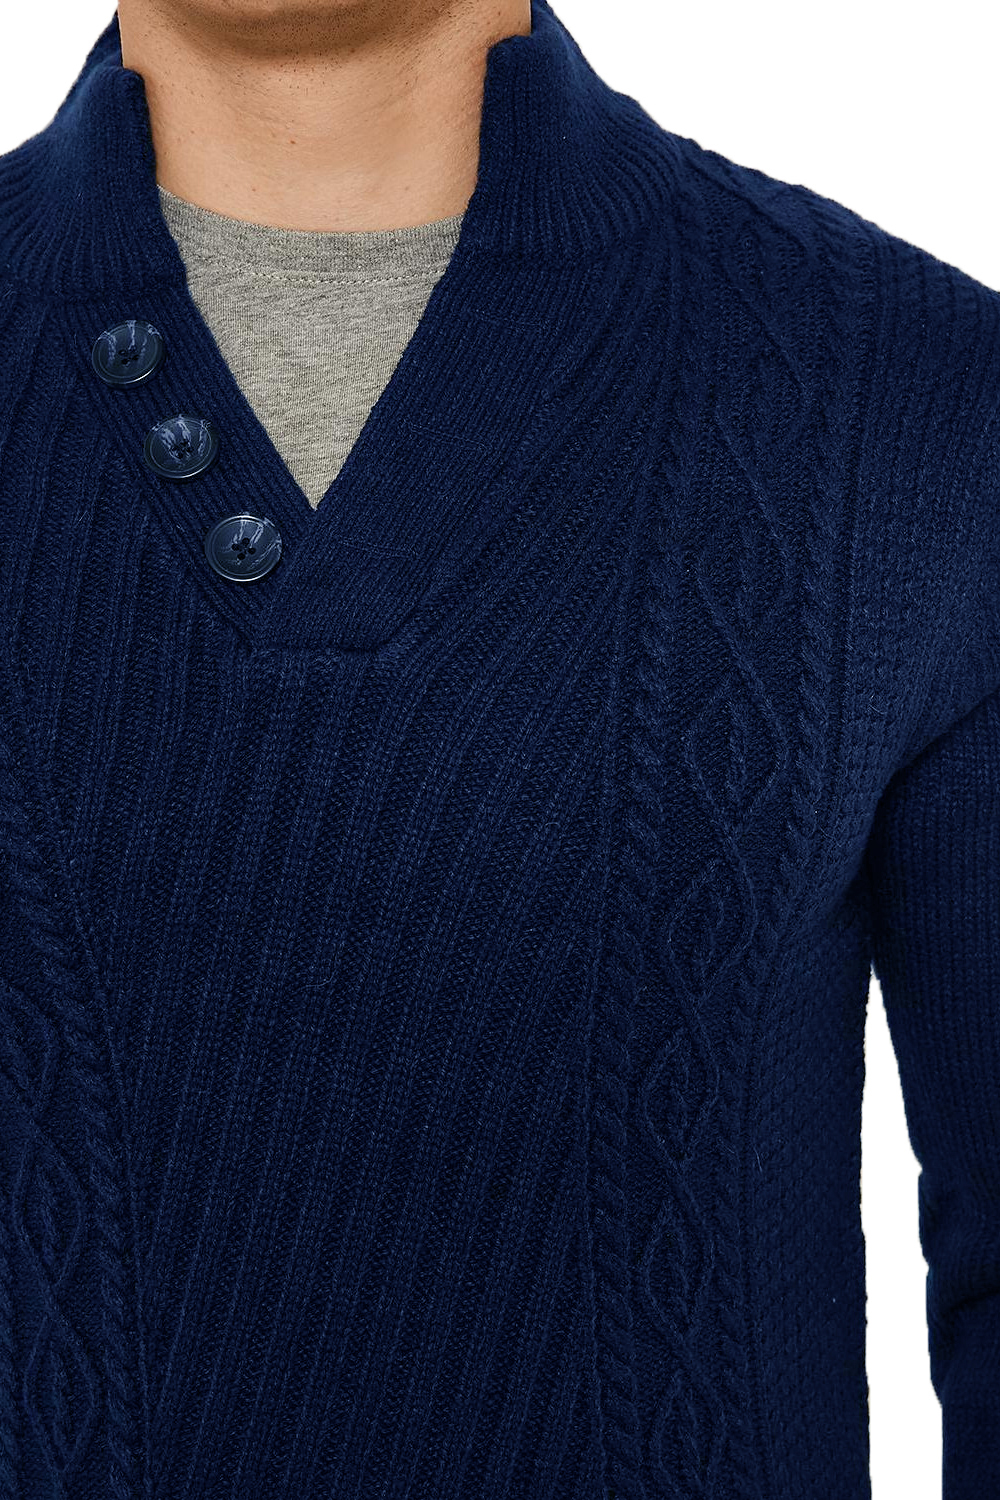 Threadbare-Wray-Mens-Top-Cable-Knited-Designer-Luxurious-Wool-Mix-Raglan-Jumpers thumbnail 16